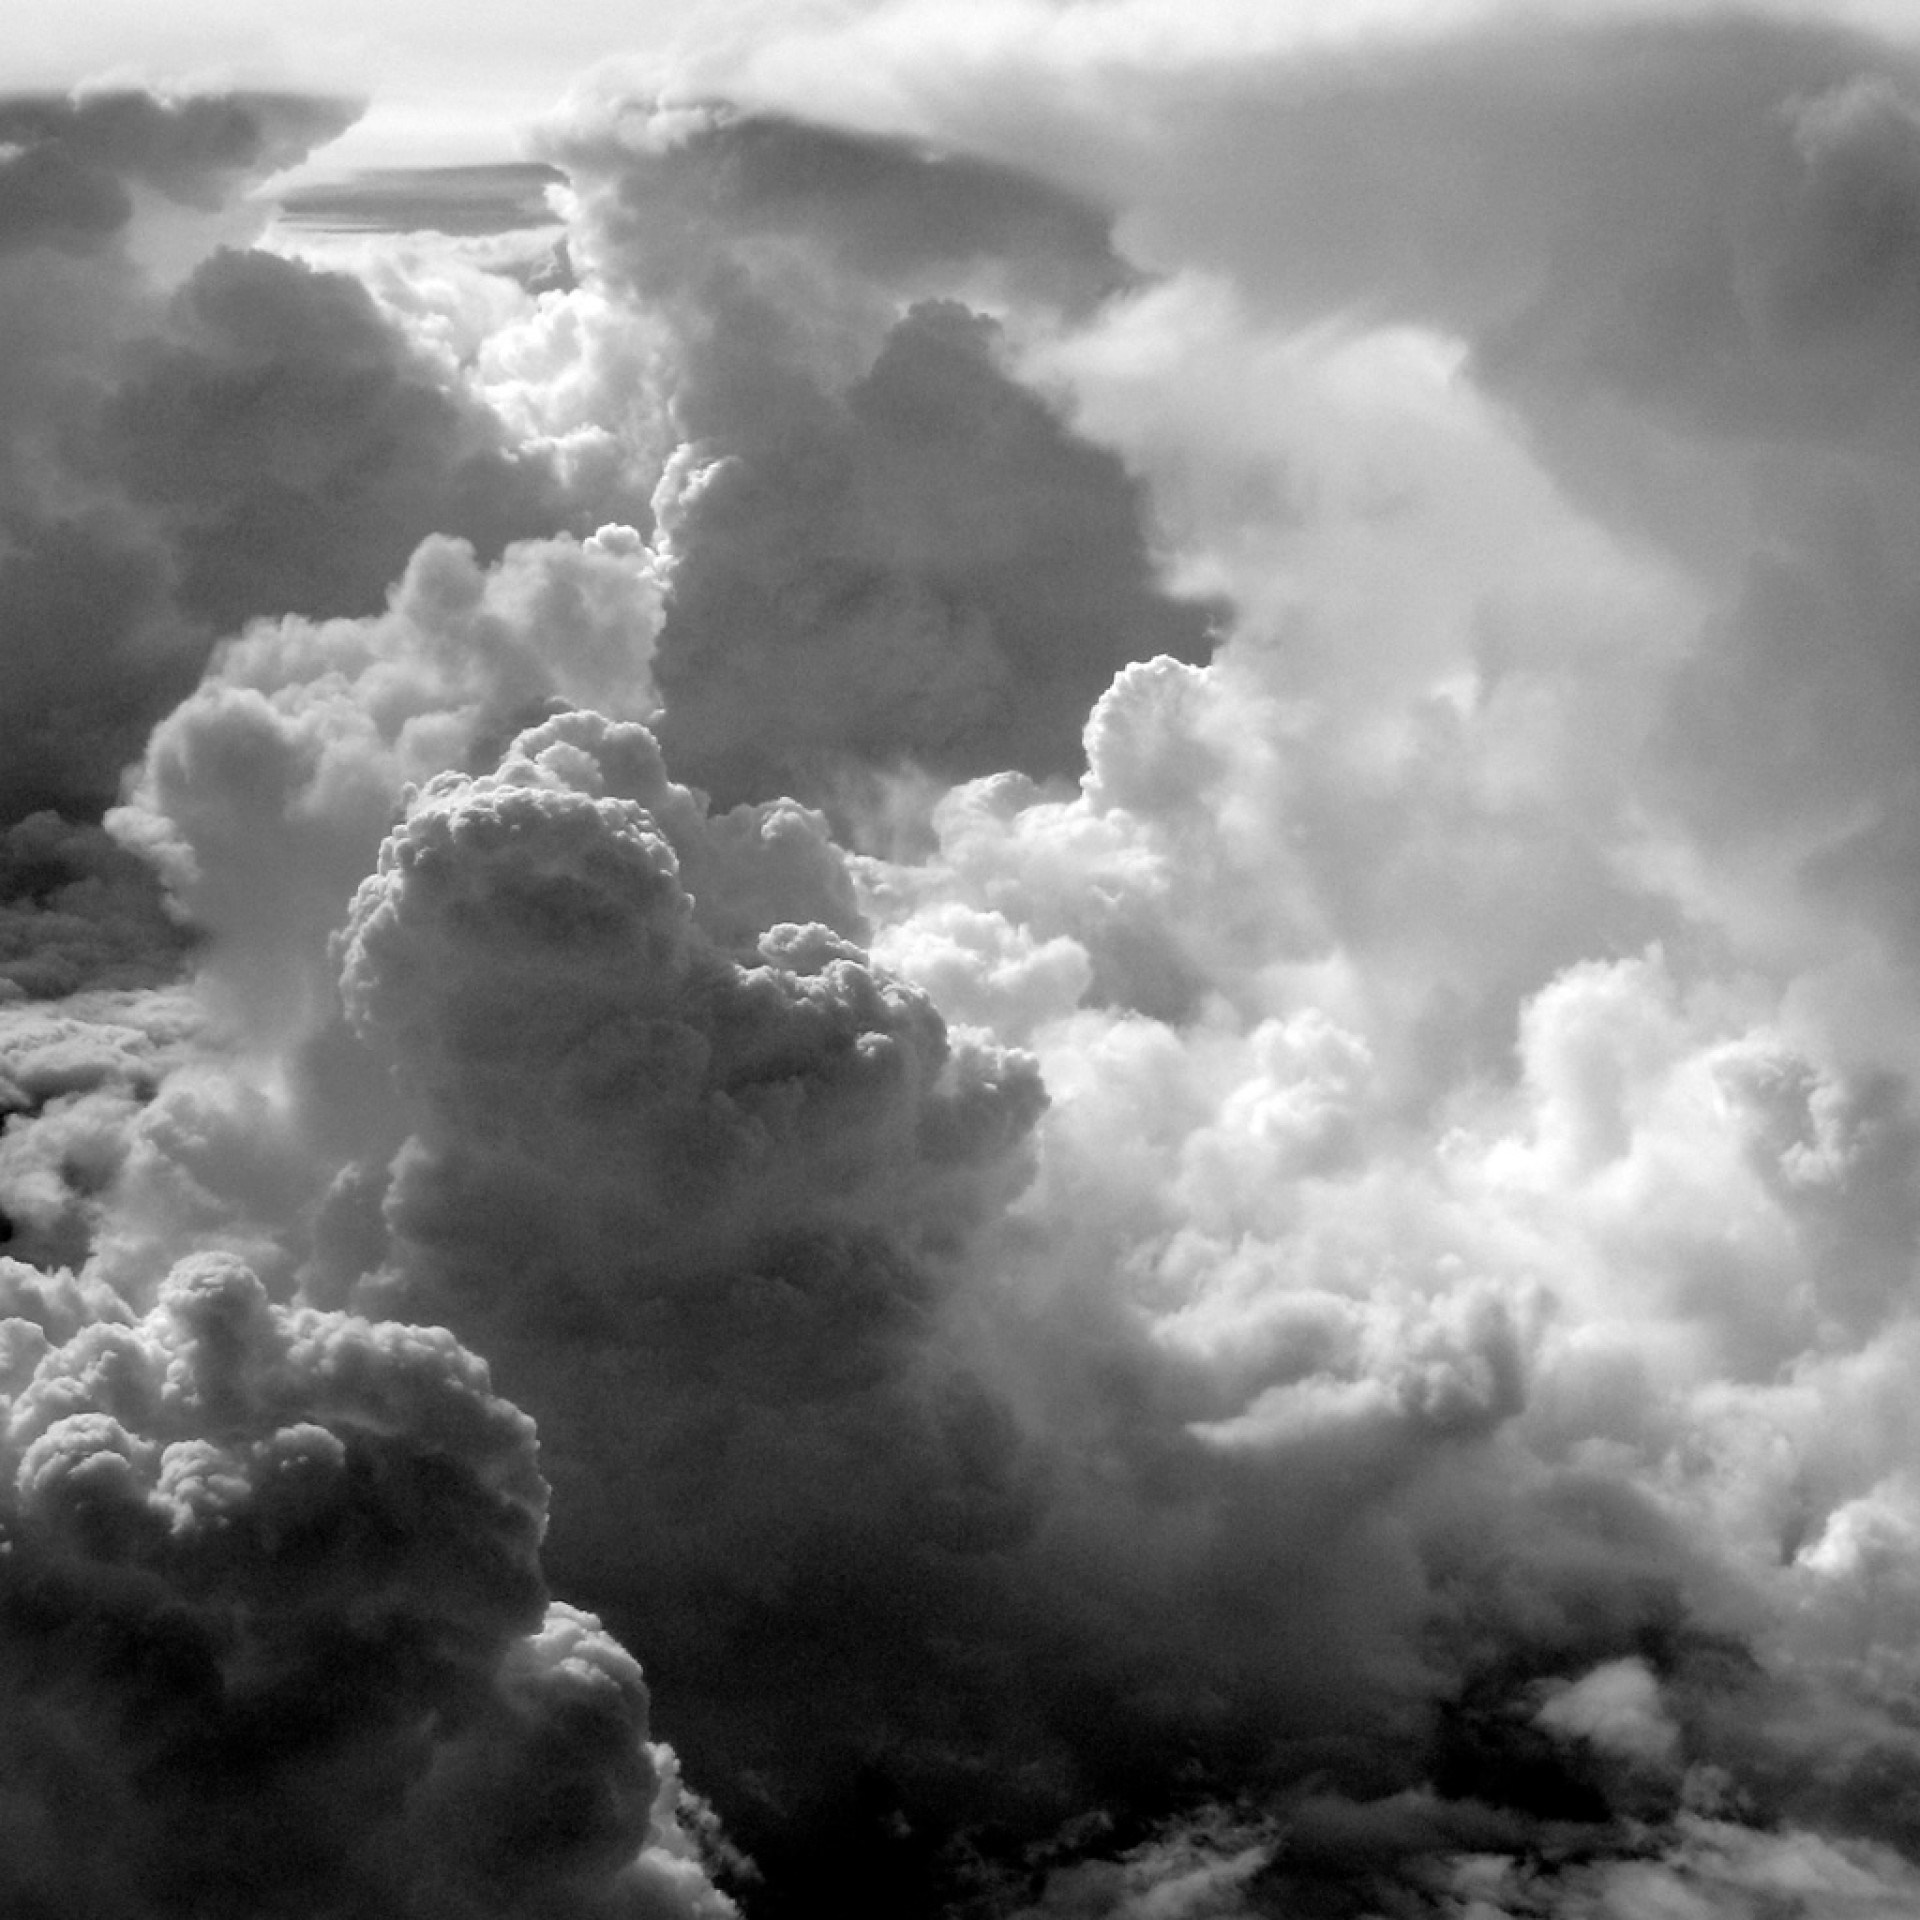 Gray Cloudy Sky Wallpaper 43 Images